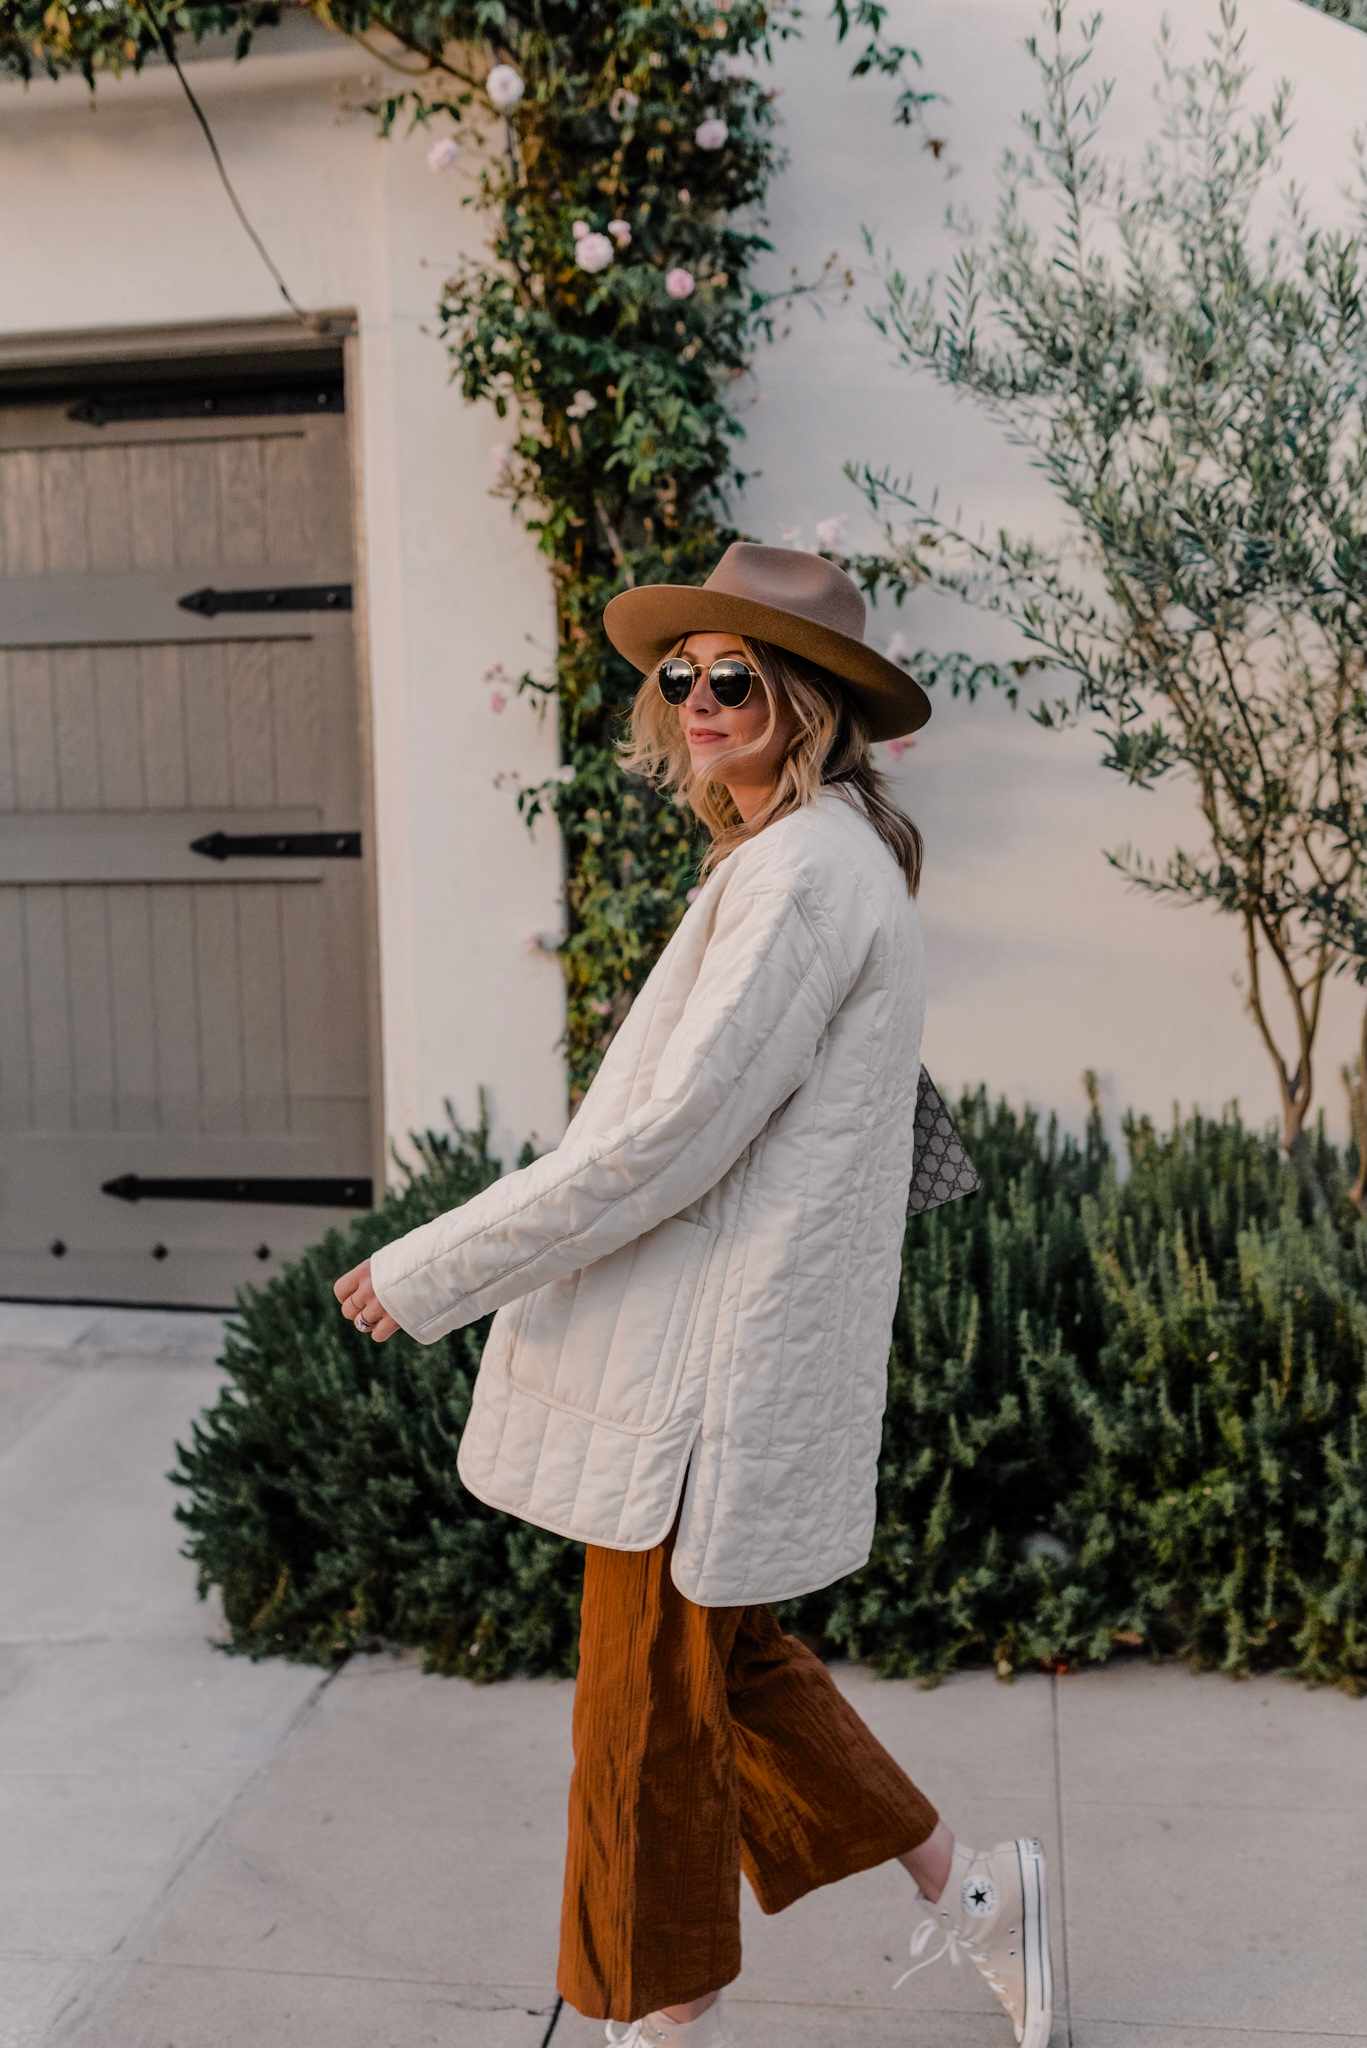 winter new arrivals im loving | New Arrivals by popular San Diego fashion blog, Navy Grace: image of a woman wearing a White Quilted Jacket, Jumpsuit, Converse Sneakers, Fedora Hat, and Handbag.